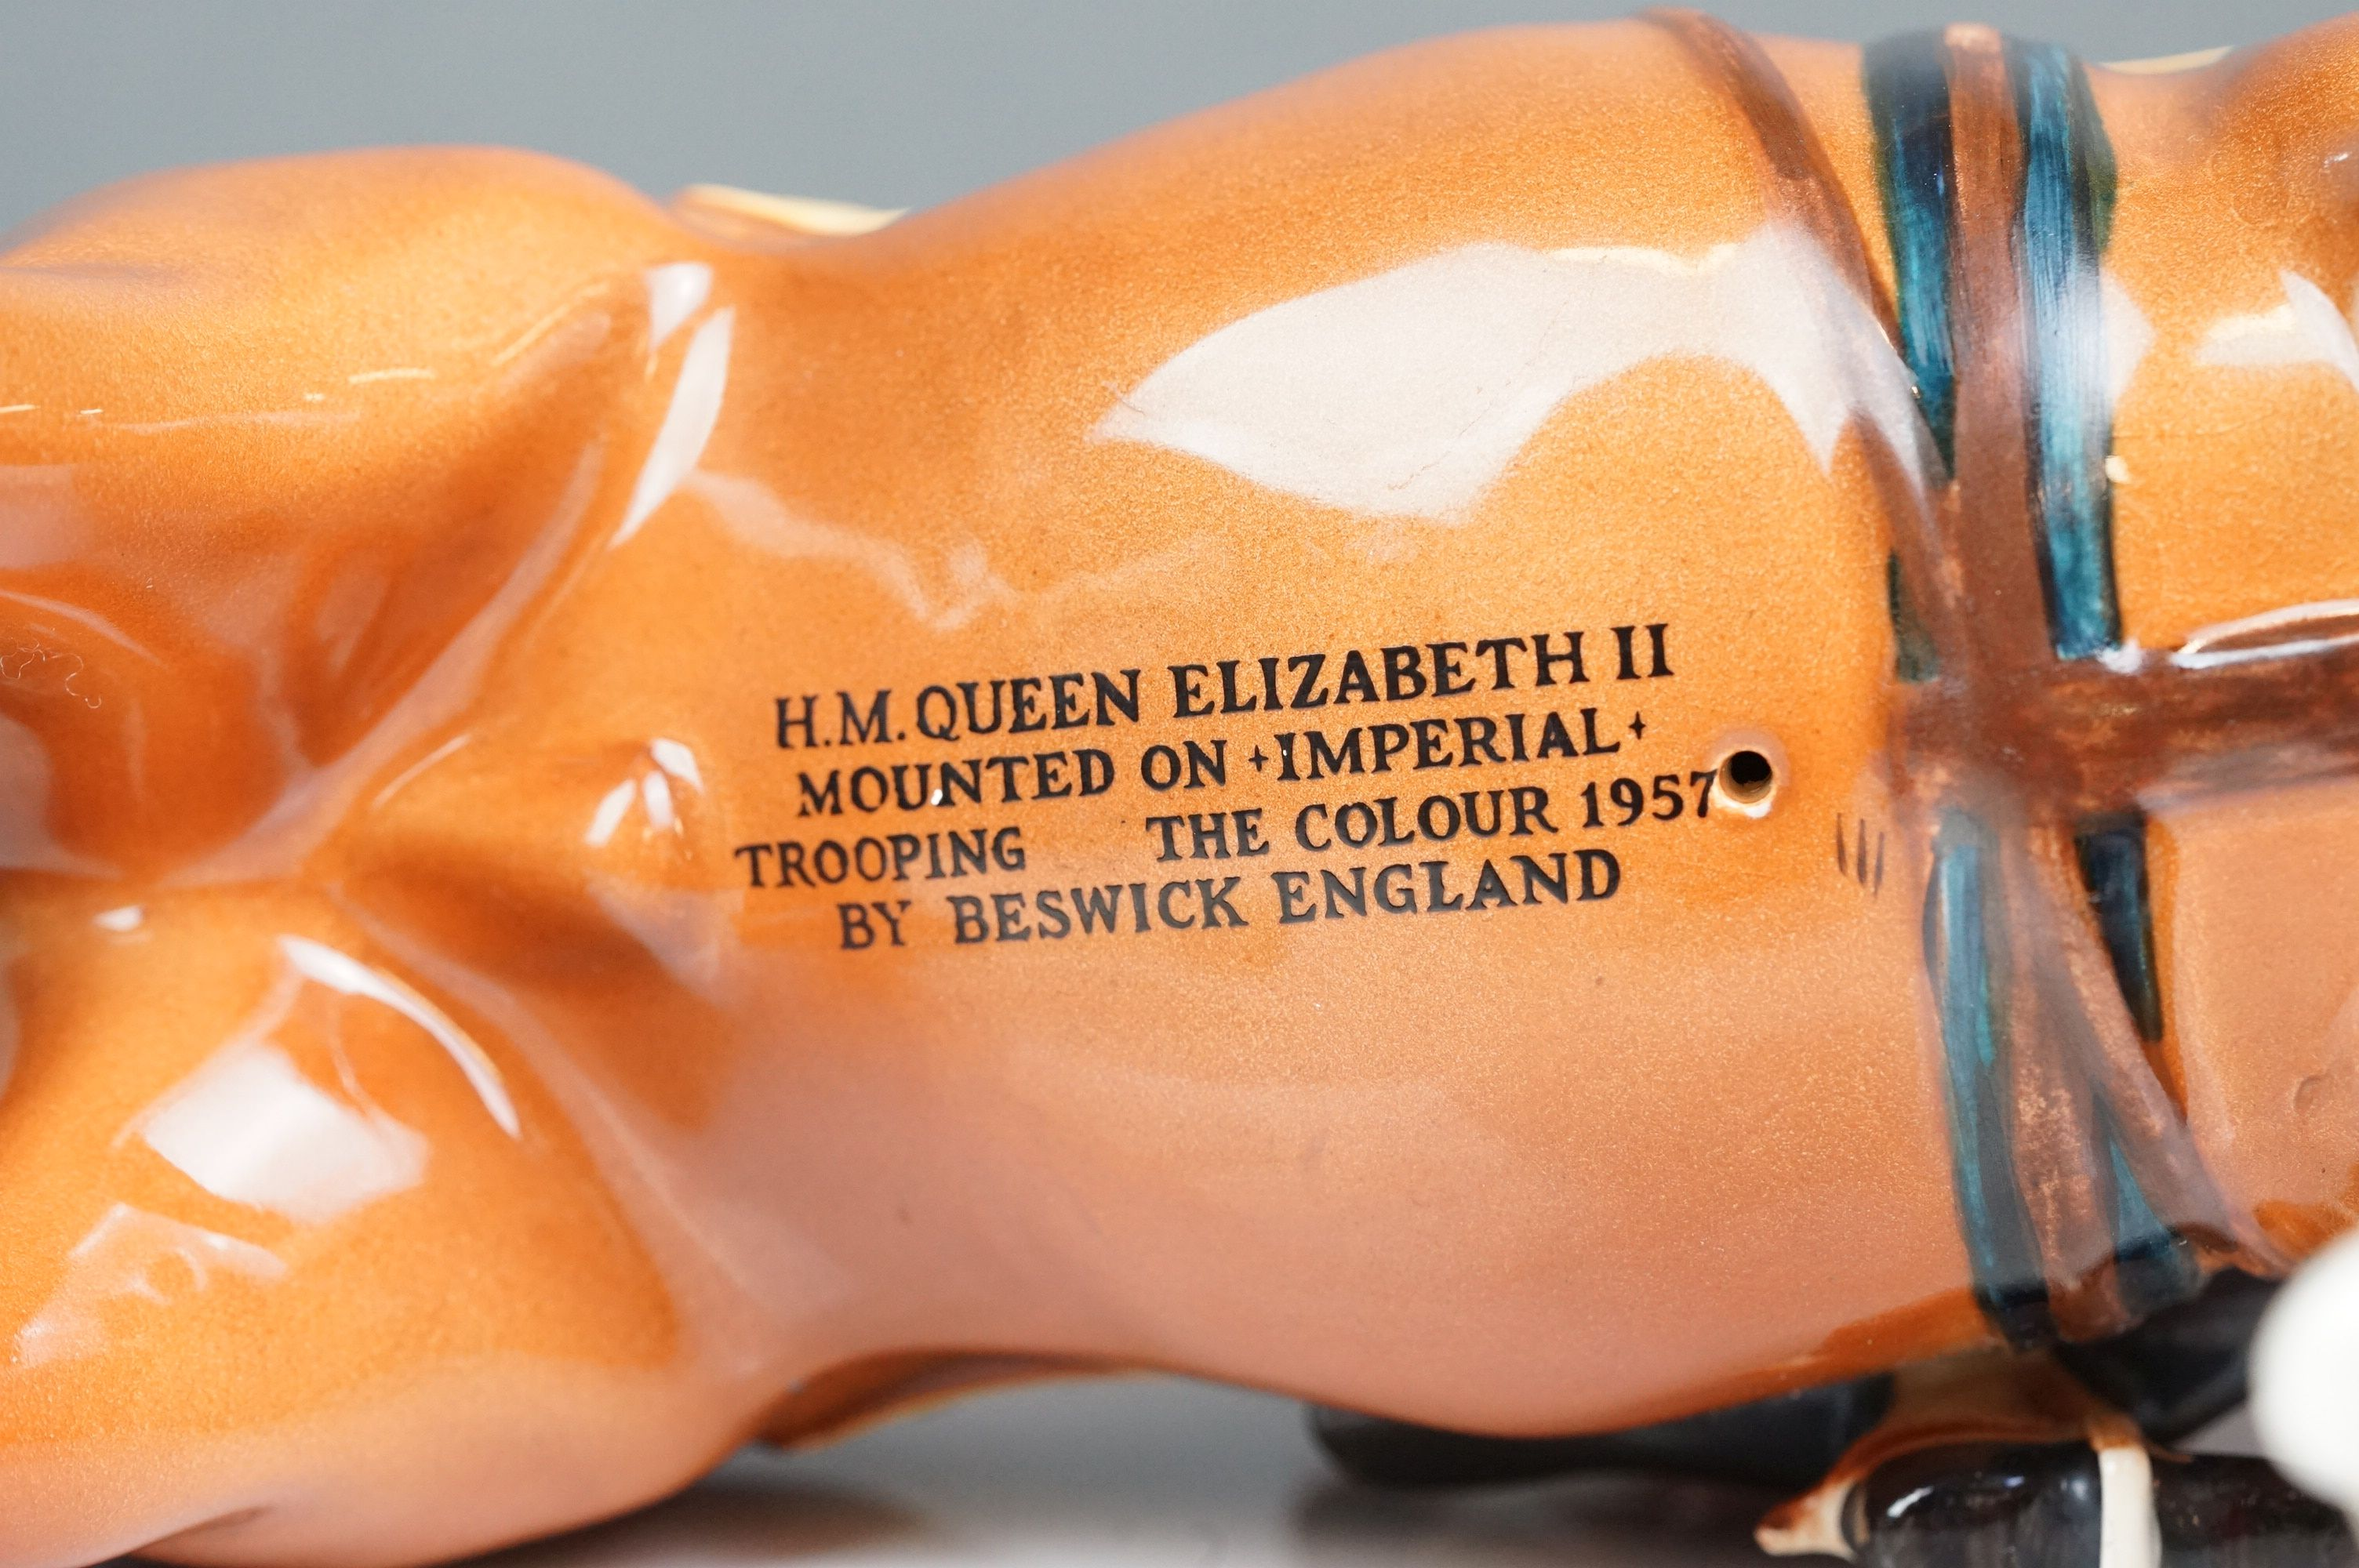 Beswick HM Queen Elizabeth II mounted on Imperial, Trooping the Colour 1957, model no. 1546 H26.5cm - Image 6 of 8